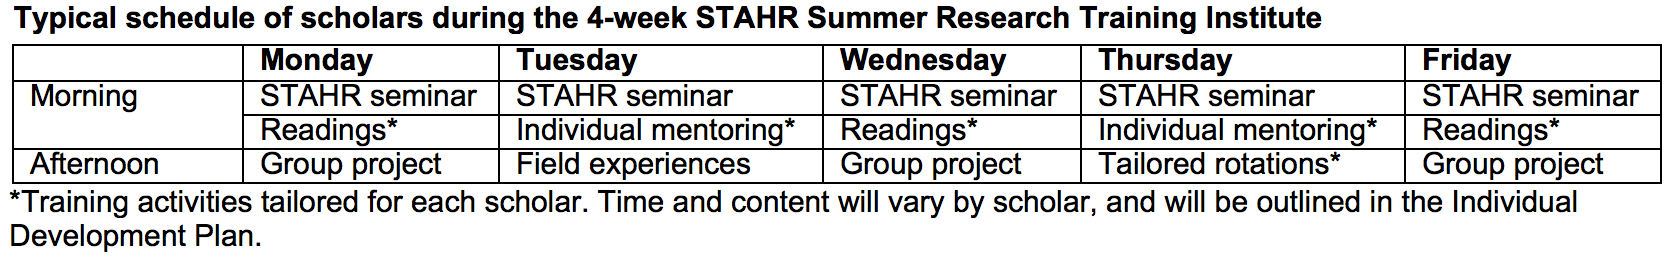 Typical Schedule of Scholars during STAHR Summer Research Institute